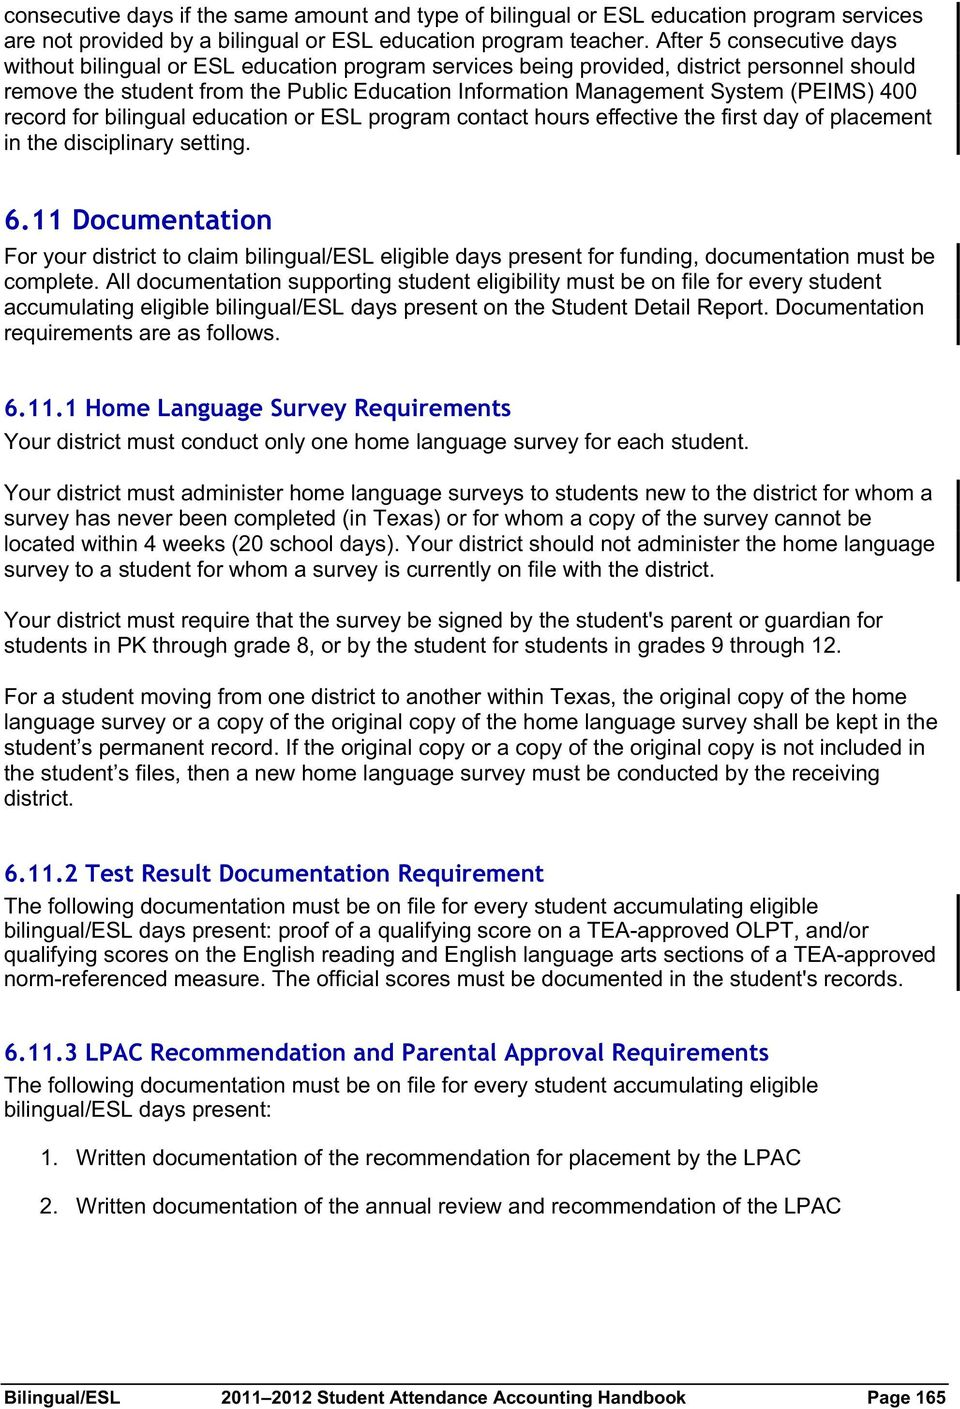 (PEIMS) 400 record for bilingual education or ESL program contact hours effective the first day of placement in the disciplinary setting. 6.